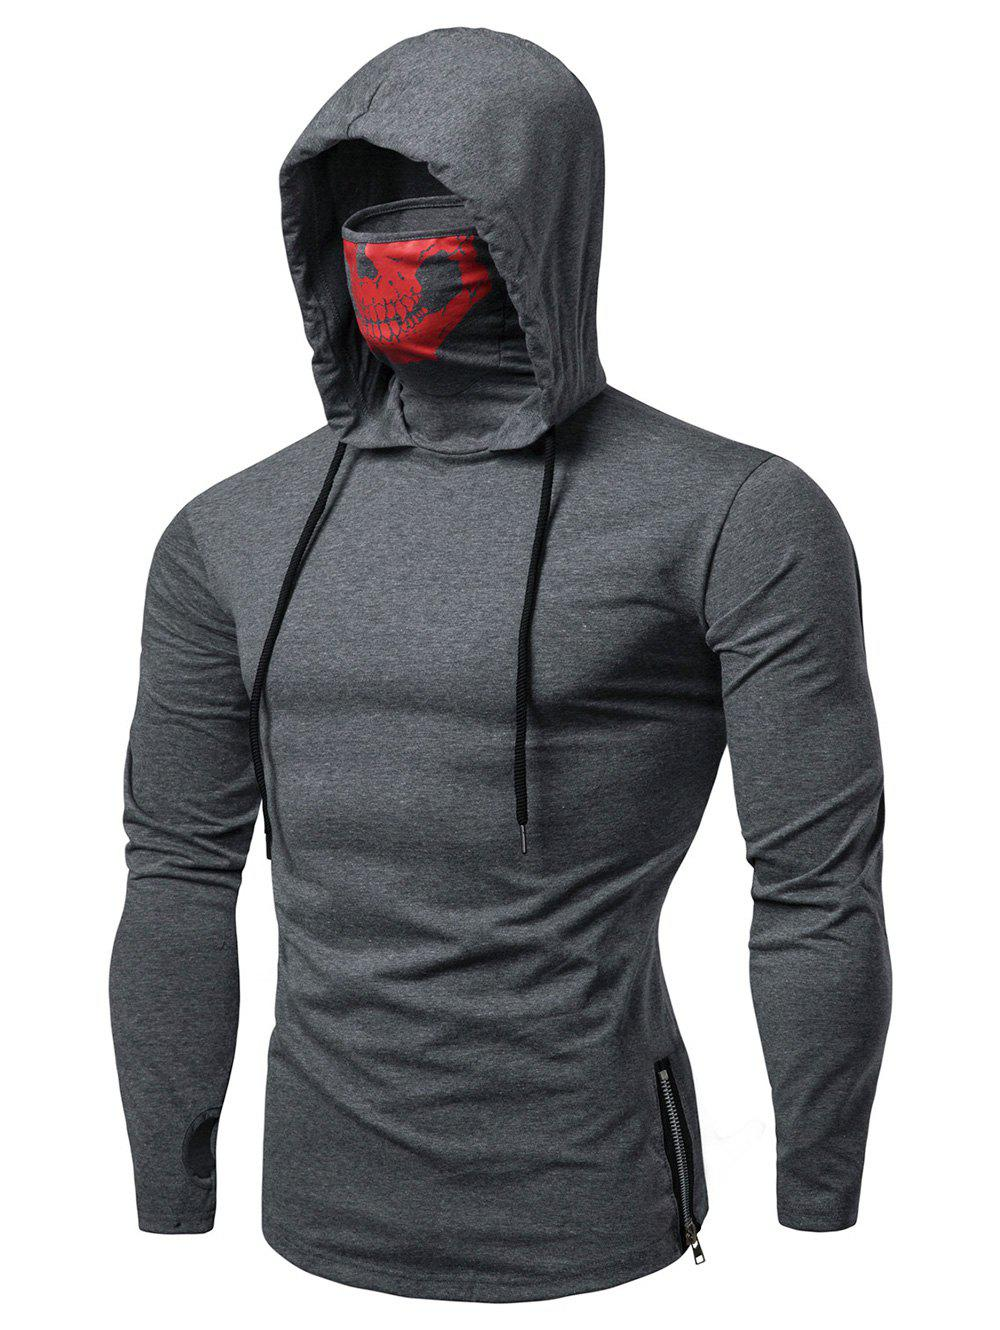 Best Fashion Drawstring Scare Mask Hoodie for Man